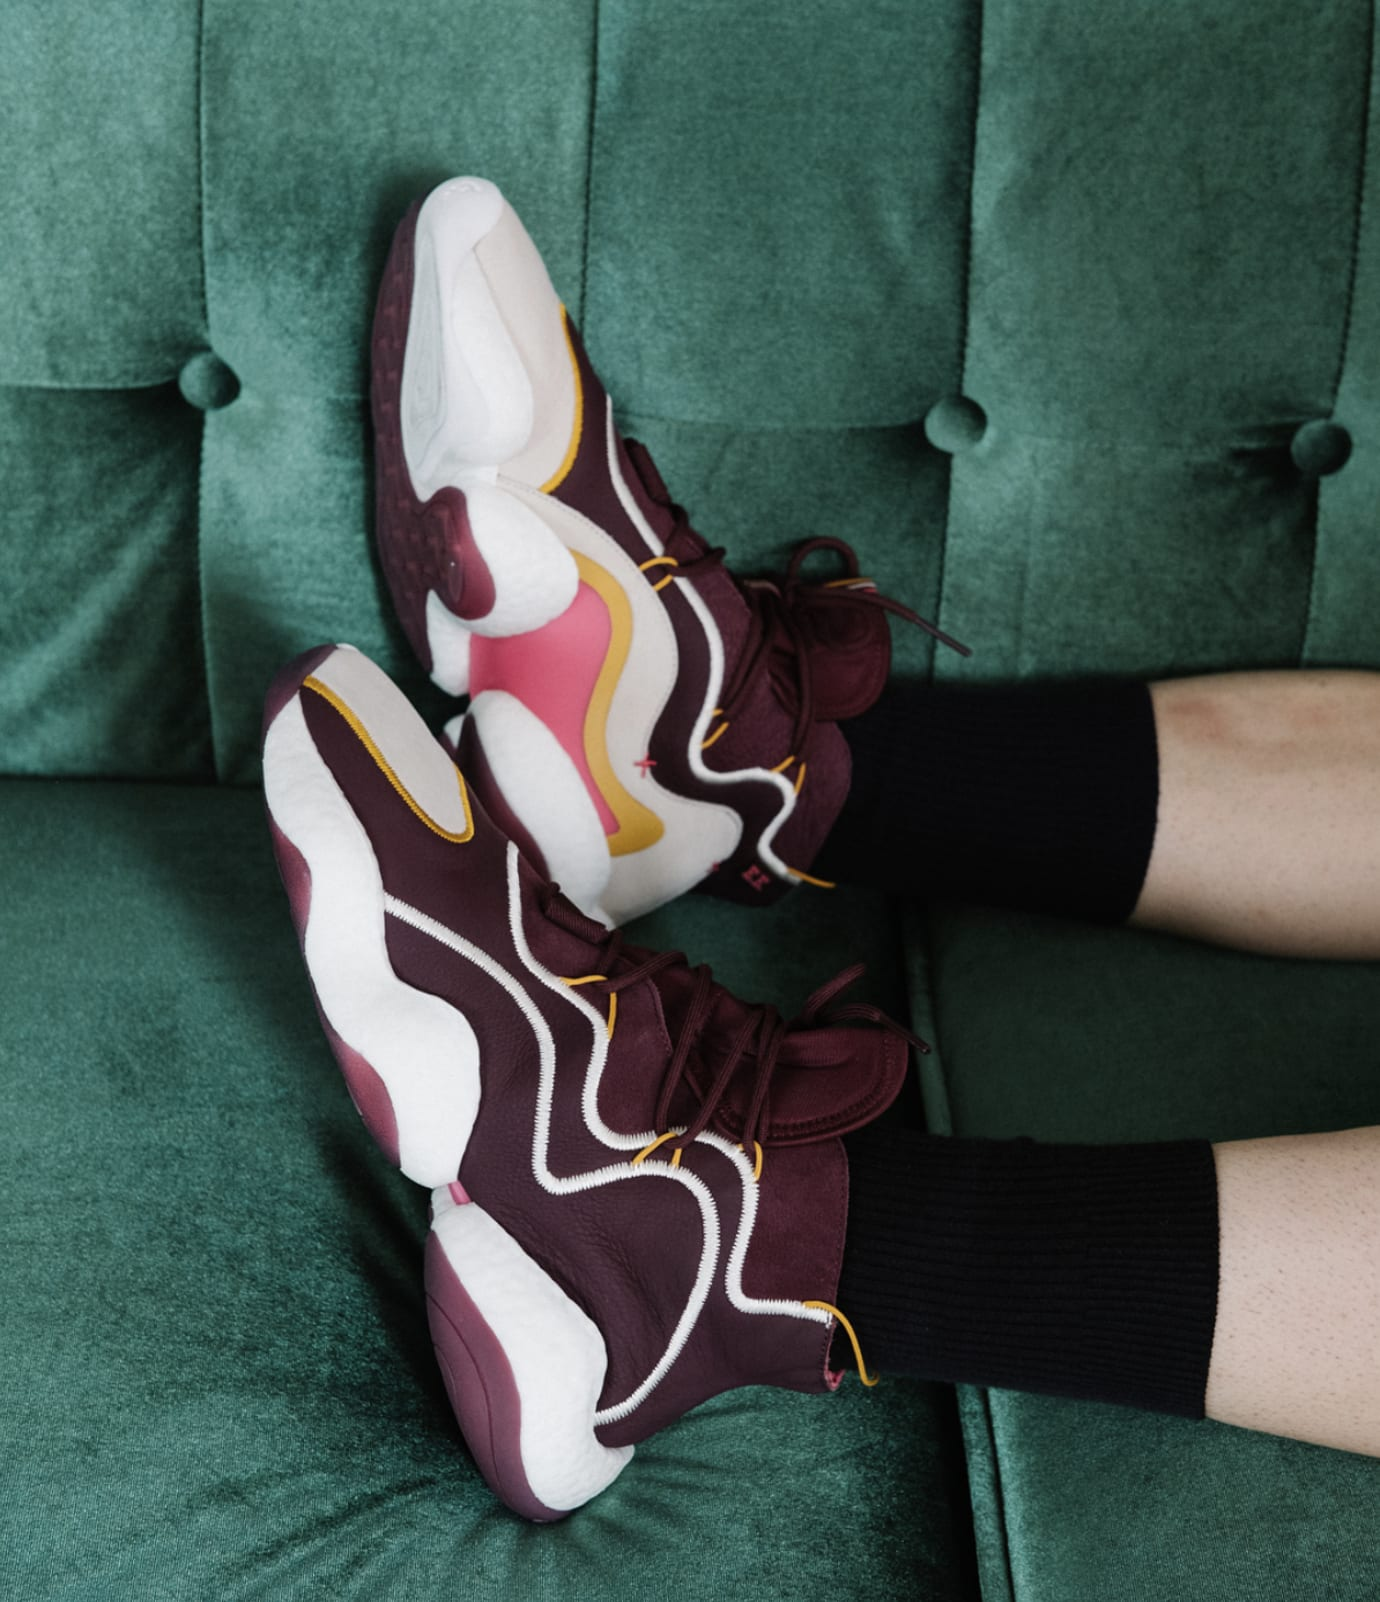 57c6aba54afe4 Eric Emanuel x Adidas Crazy BYW Sneaker Collab Release Date BD7242 ...